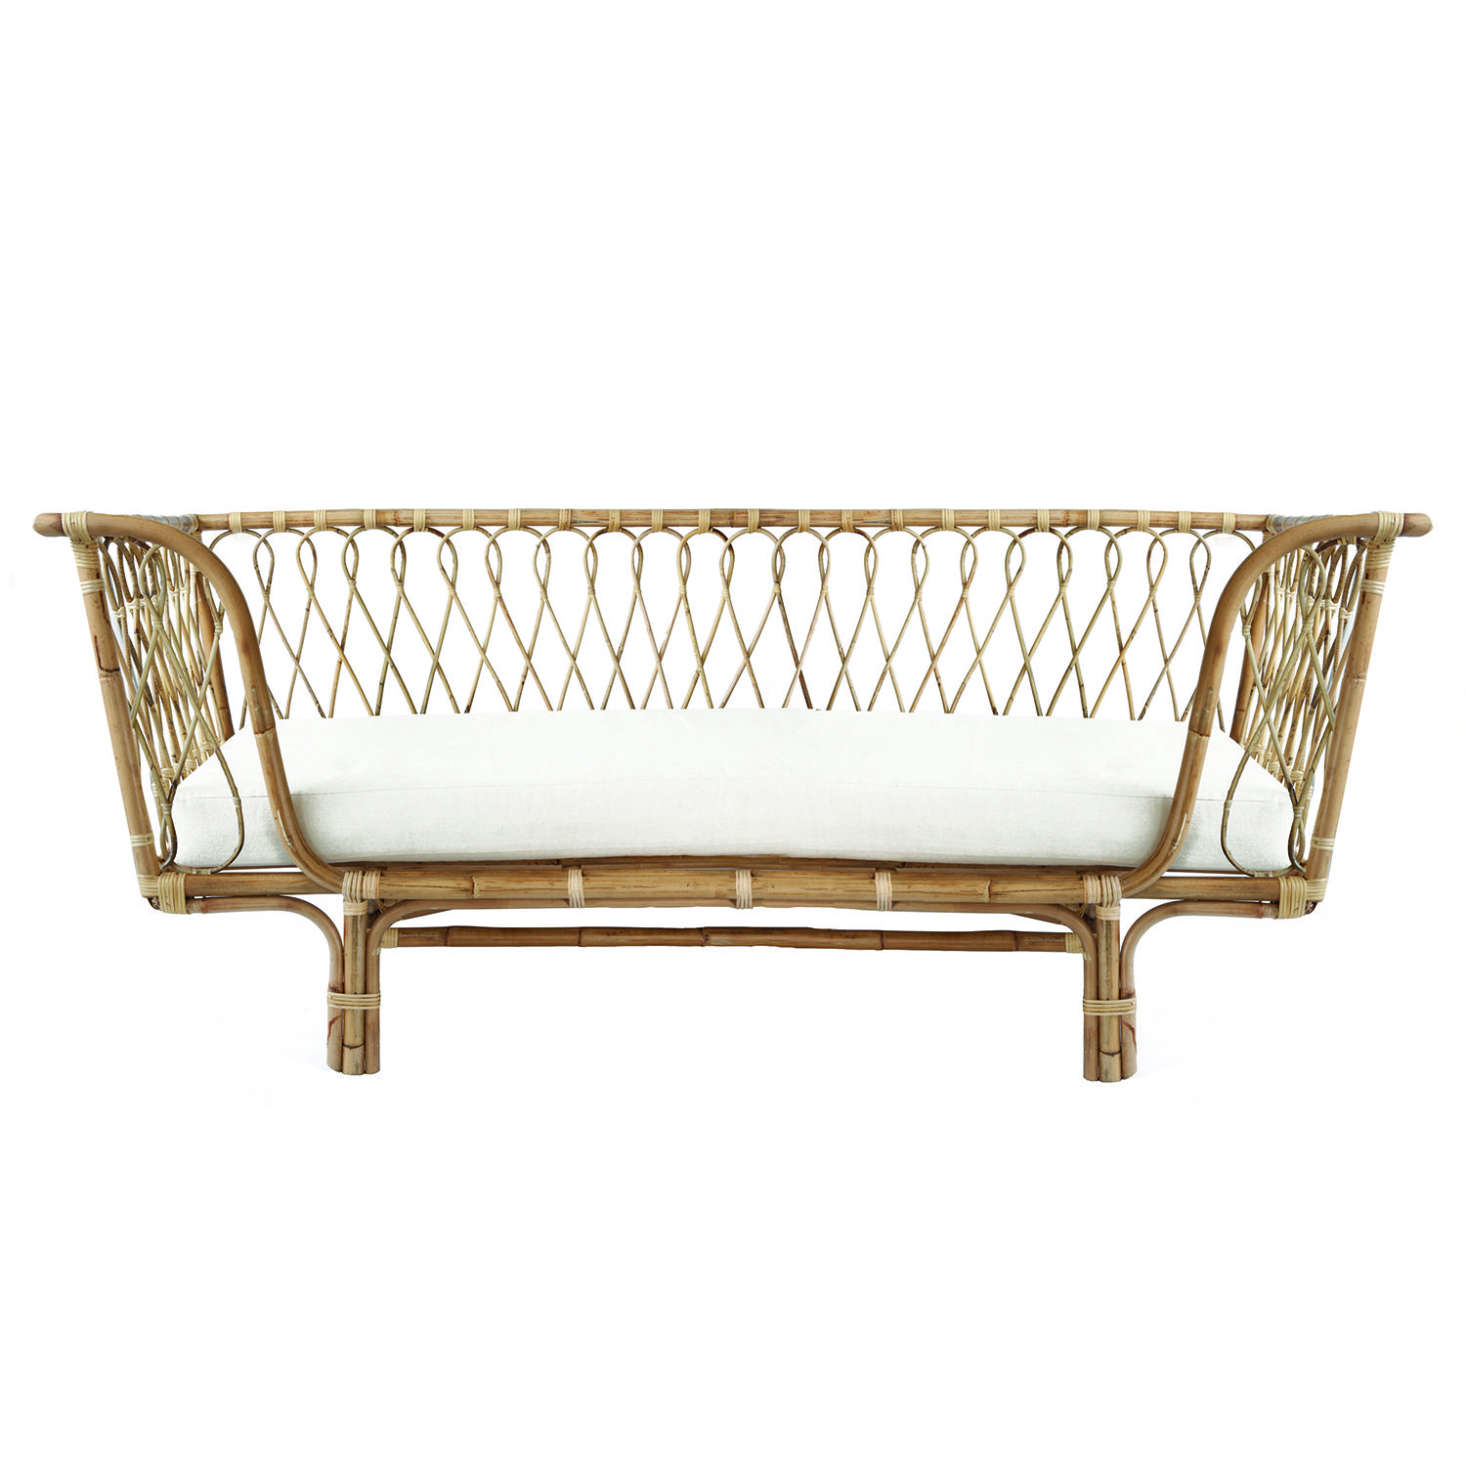 The St. Elmo, $899 AUD, mattress included, is but one of many rattan daybeds and settees available from The Rattan Collective of Byron Bay, Australia (international shipping is currently not available but the company is looking into partnering with a US retailer).